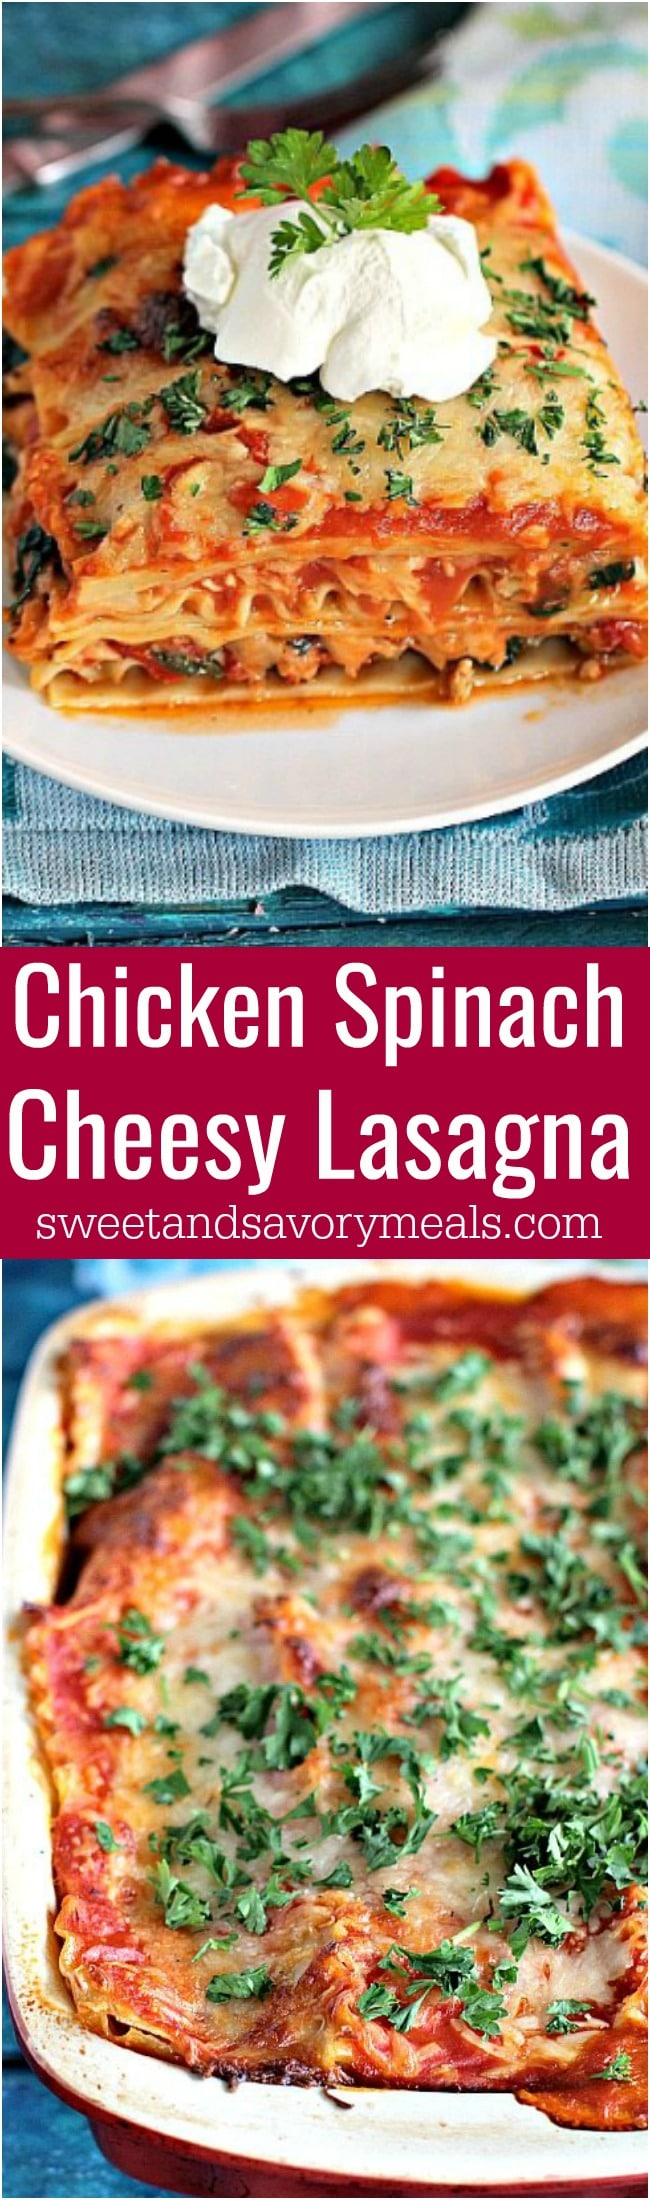 Chicken Spinach Lasagna is easy to make, loaded with lean chicken and spinach for a nutritional boost. Delicious, and leftovers taste amazing!